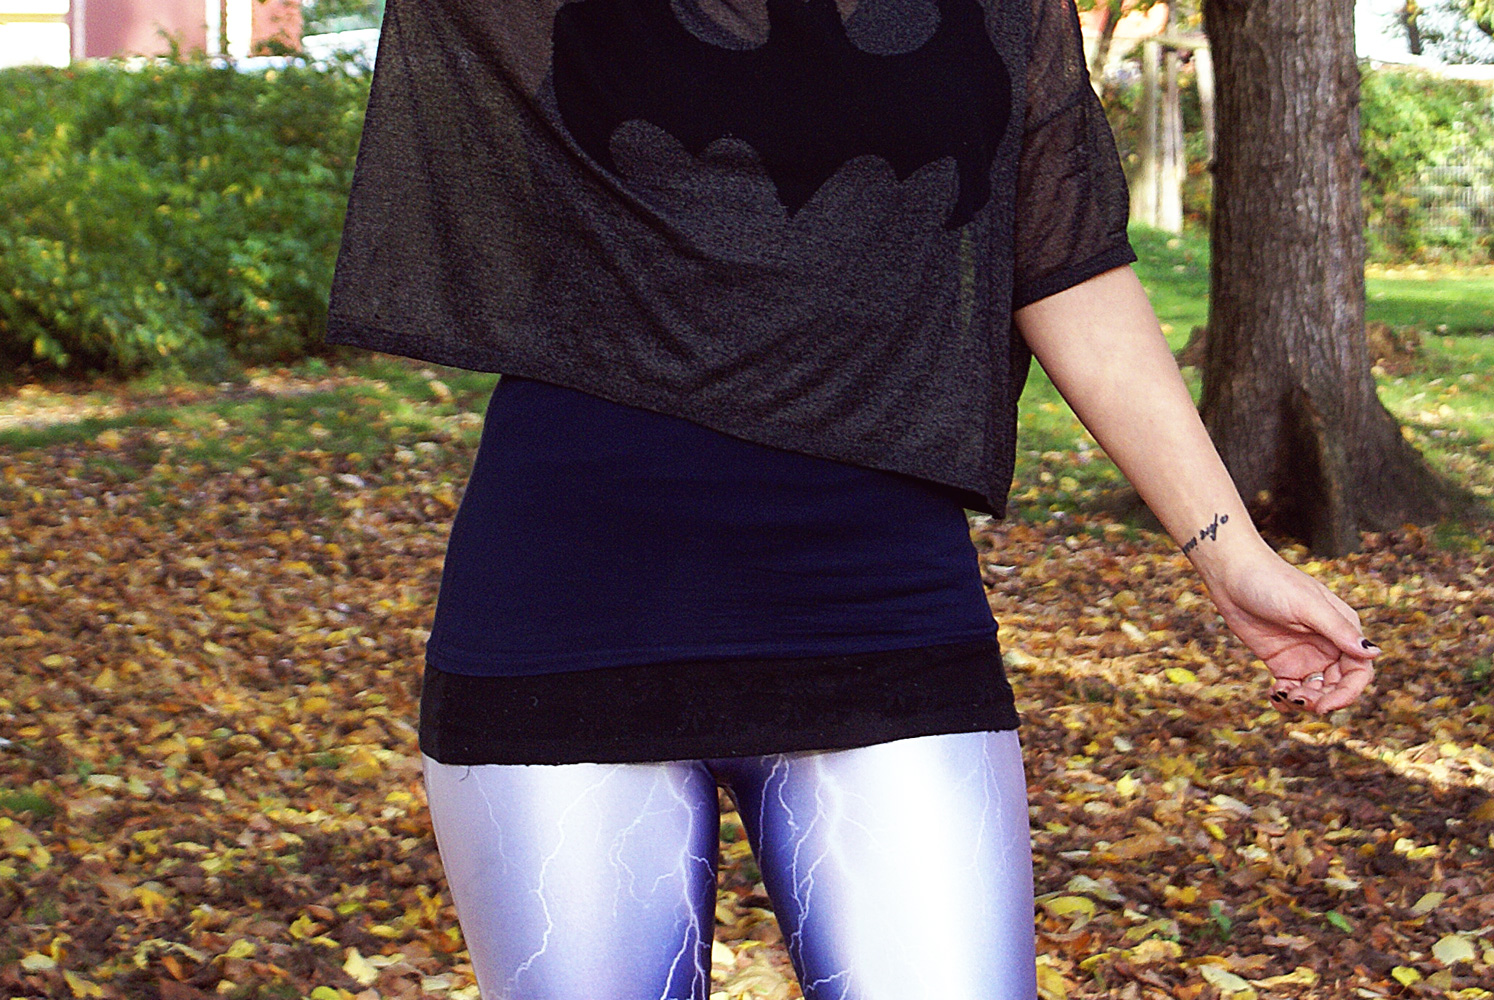 blitze lightning leggings black milk clothing batman glitzer glitter h&m shirt outfit alternative mode